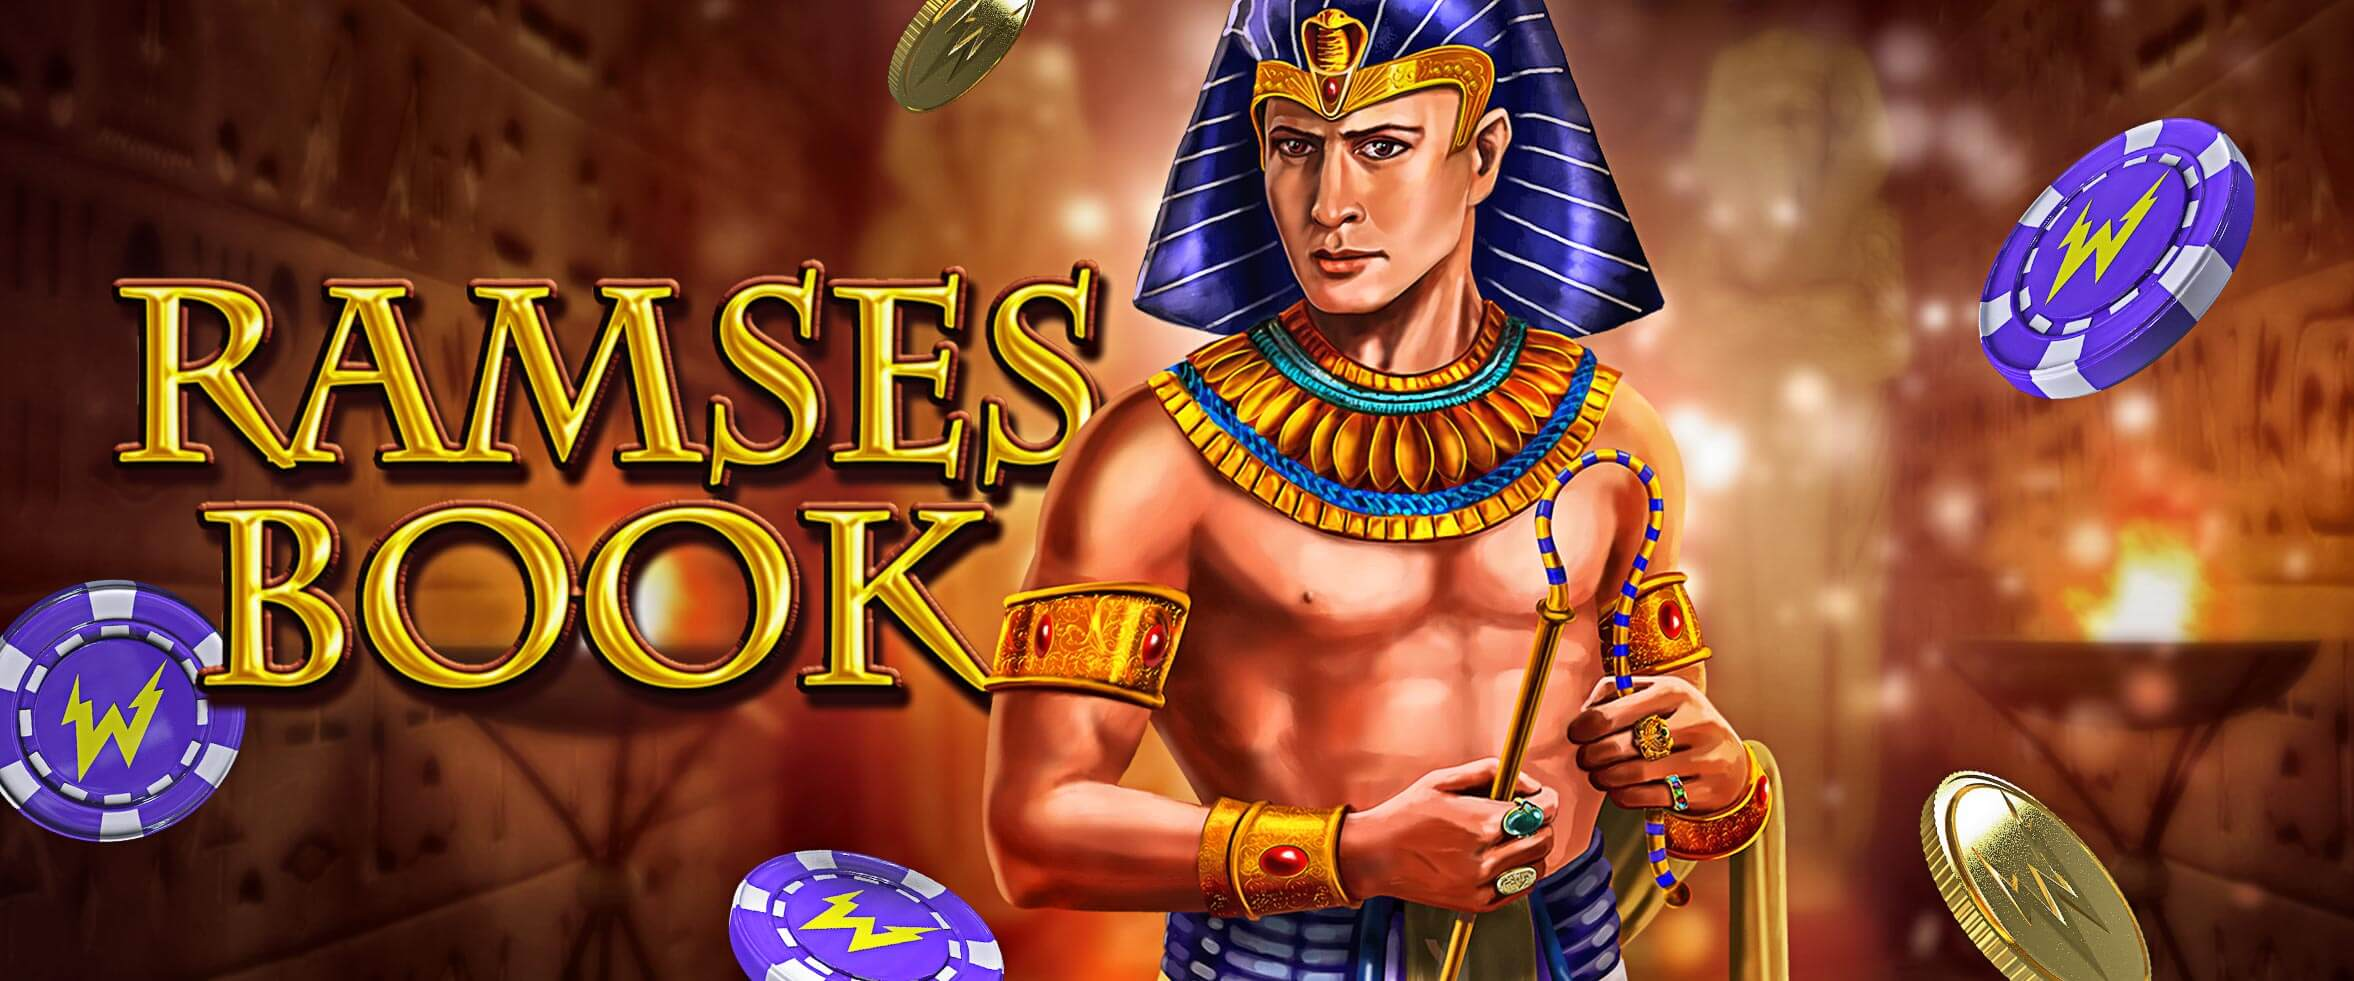 $10k in Prizes to be Won Playing Ramses Book